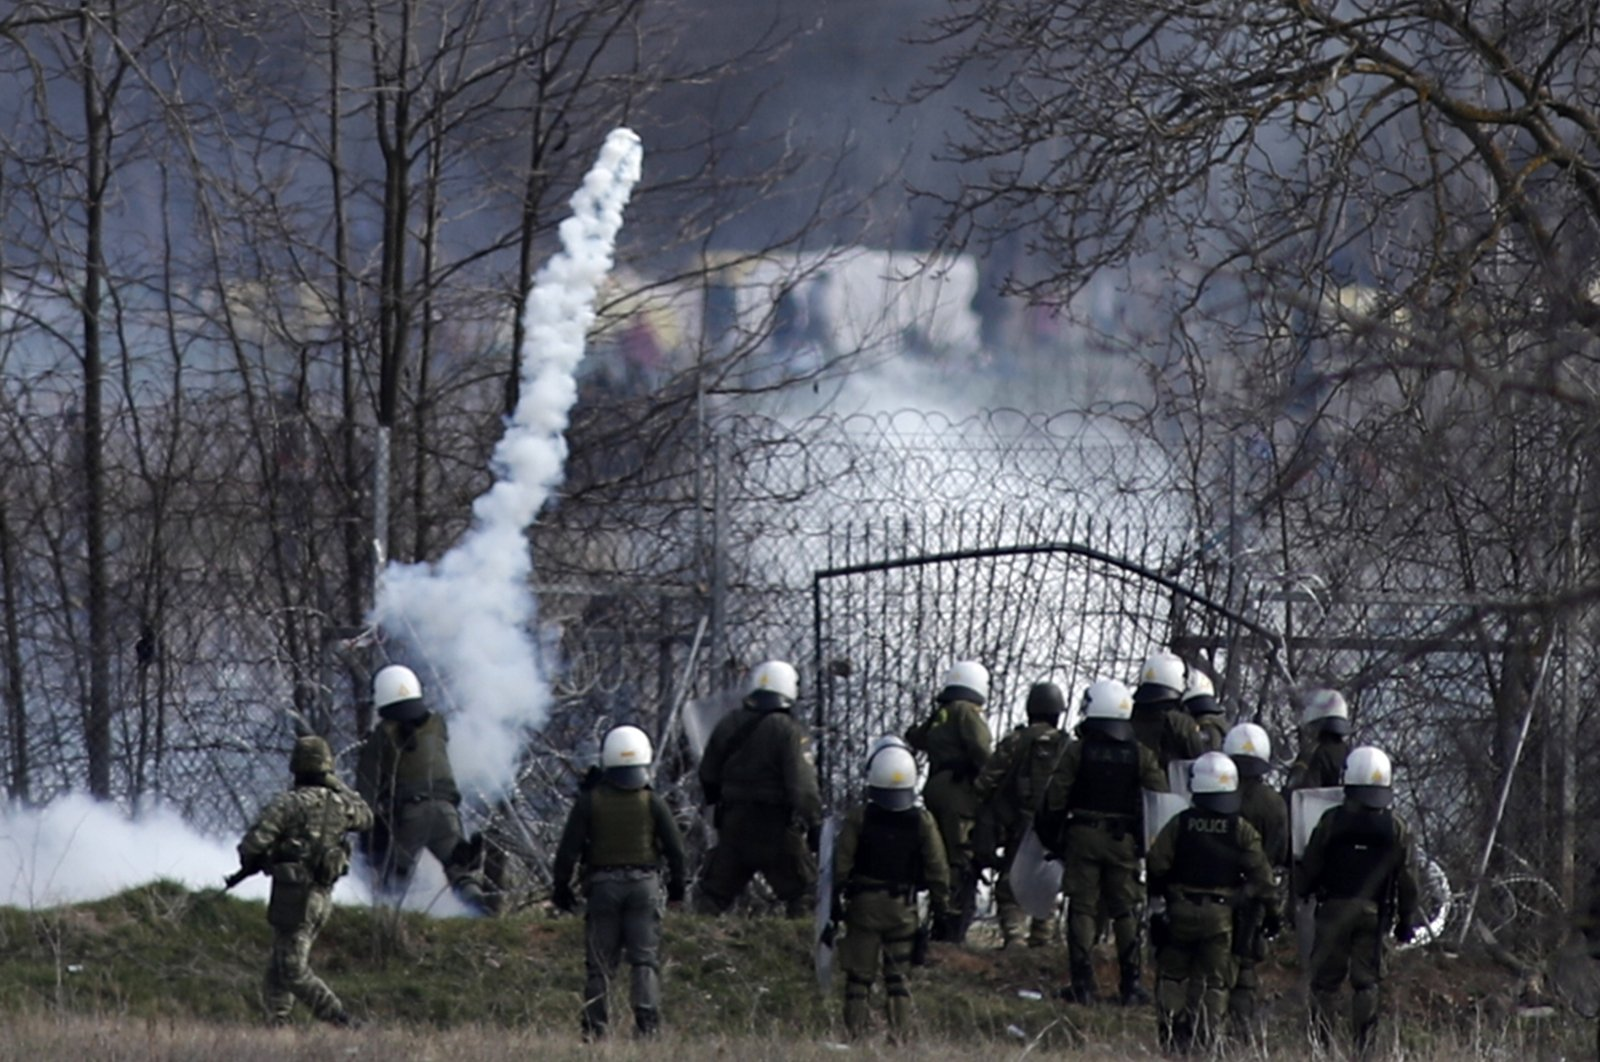 Greek police stand guard as migrants gather at a border fence on the Turkish side during clashes at the Greek-Turkish border, March 7, 2020. (AP Photo)